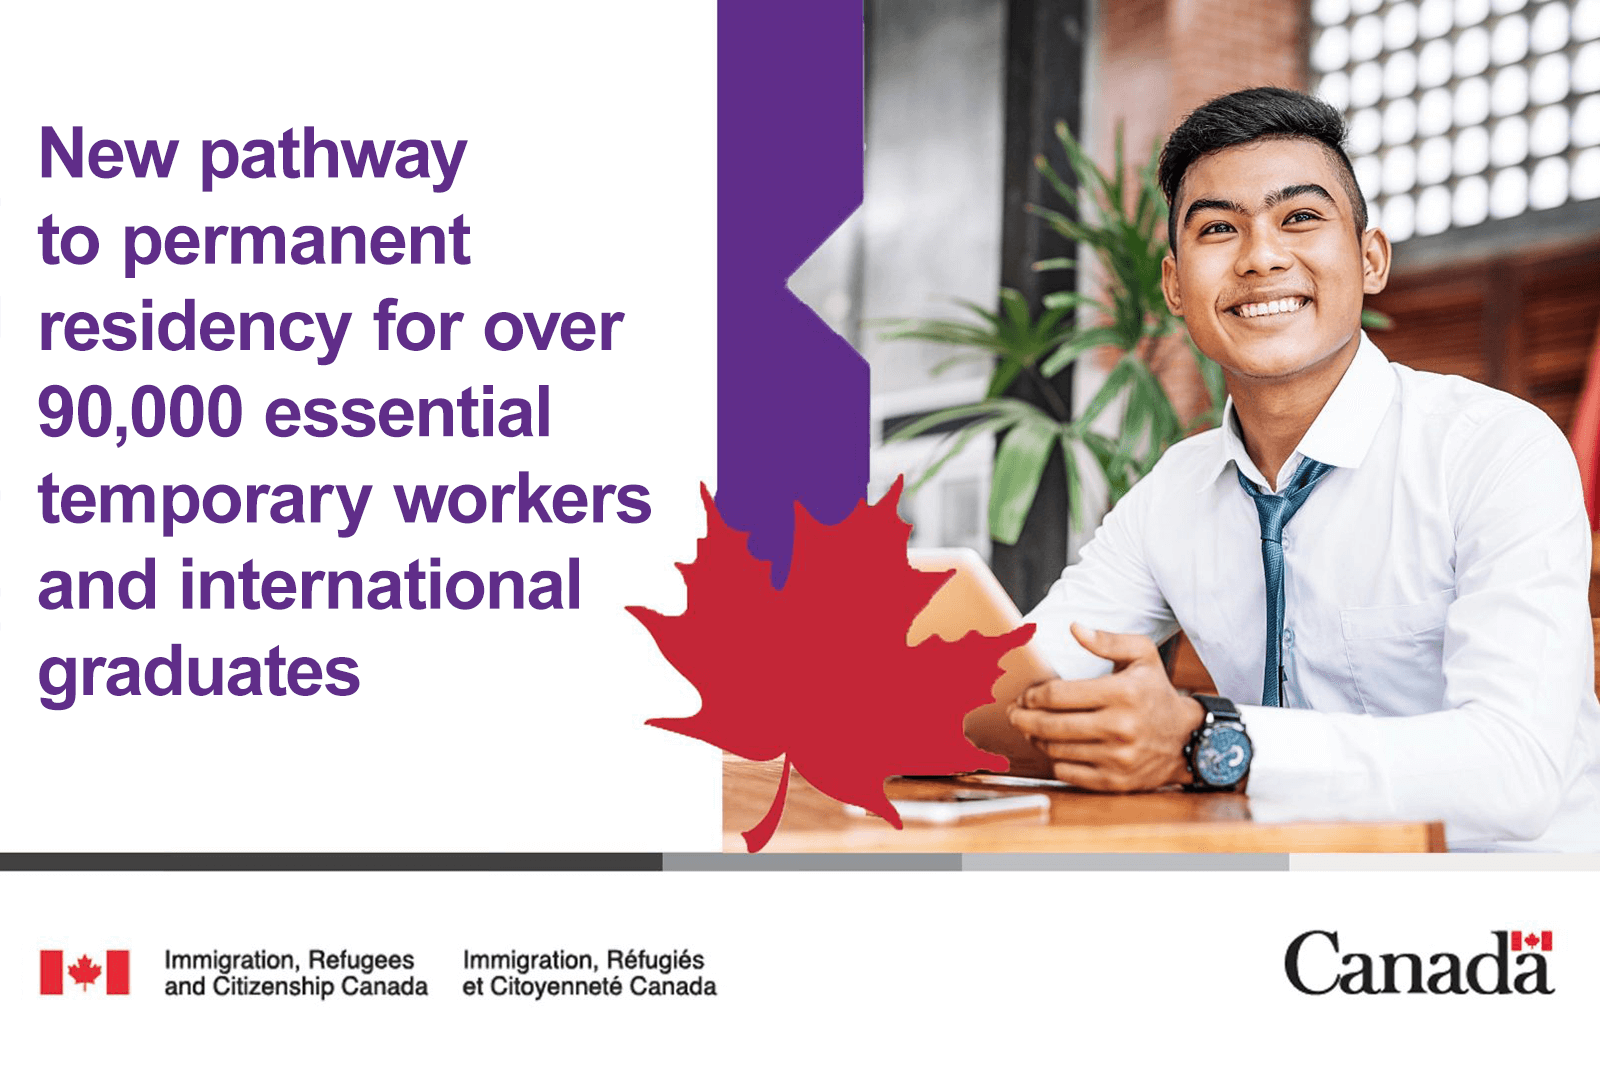 Permanent residence pathway now availabe for up to 90,000 temporary workers